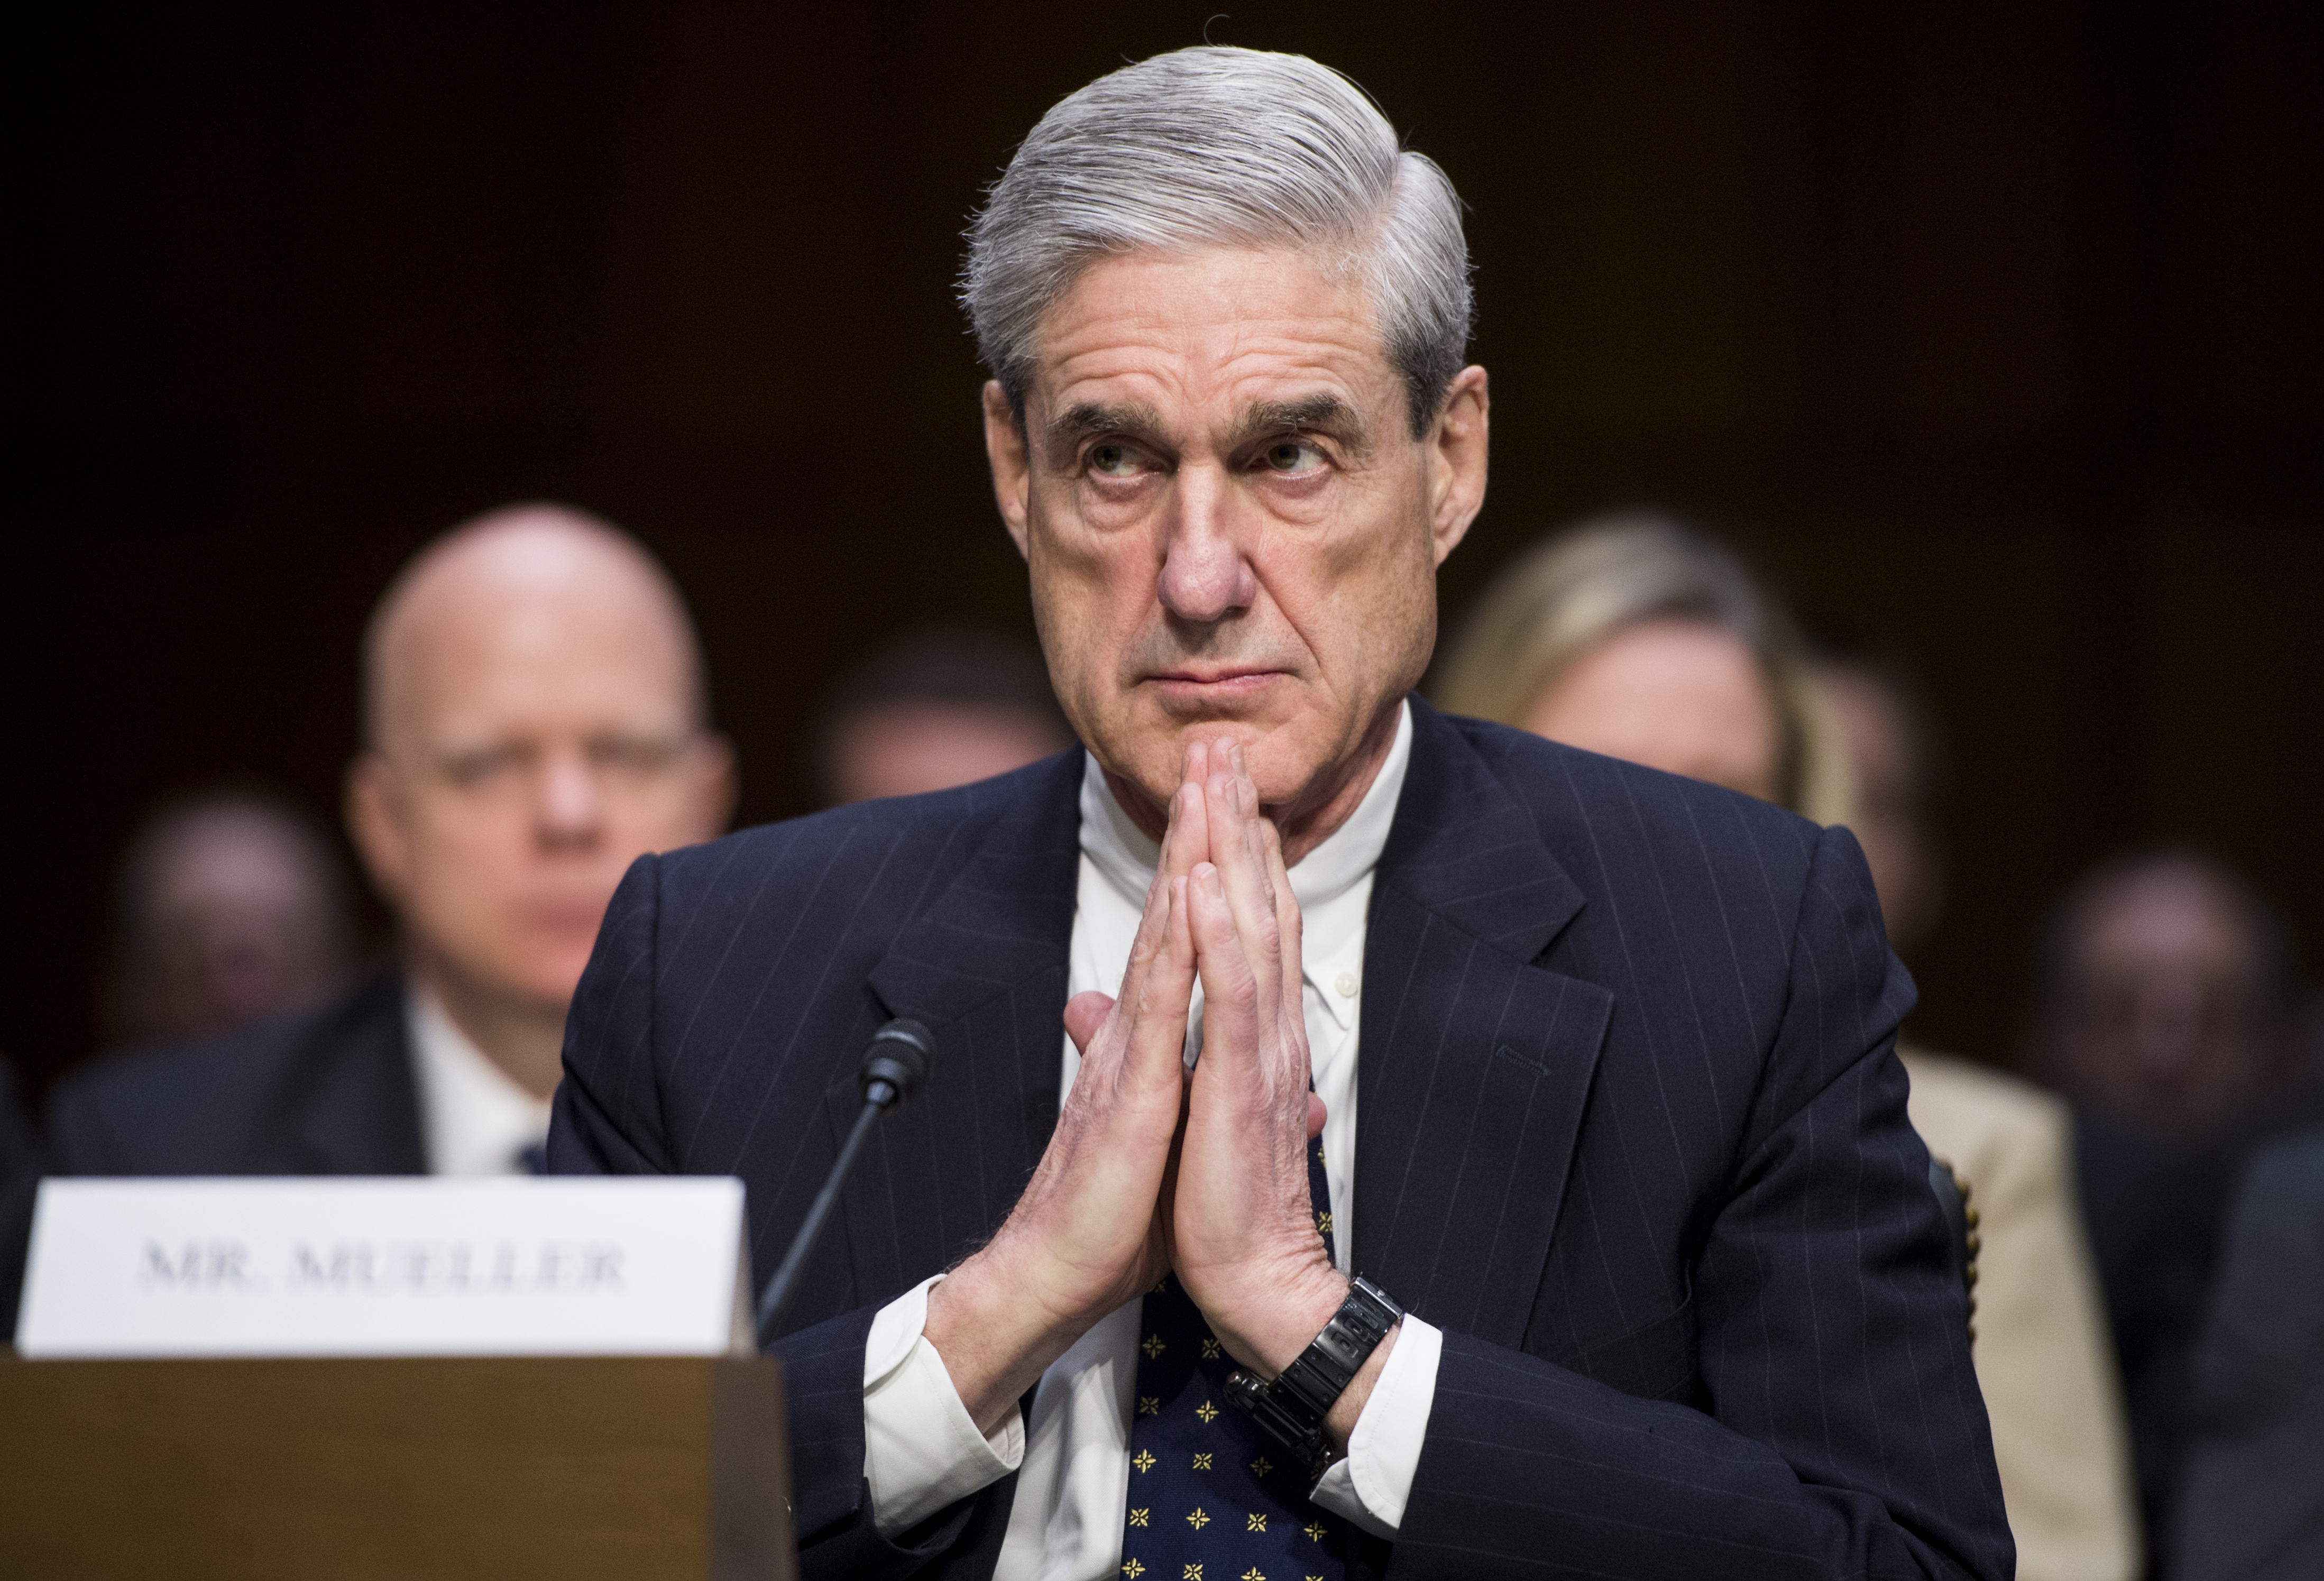 Mueller report: 4 key things to look for once it's released